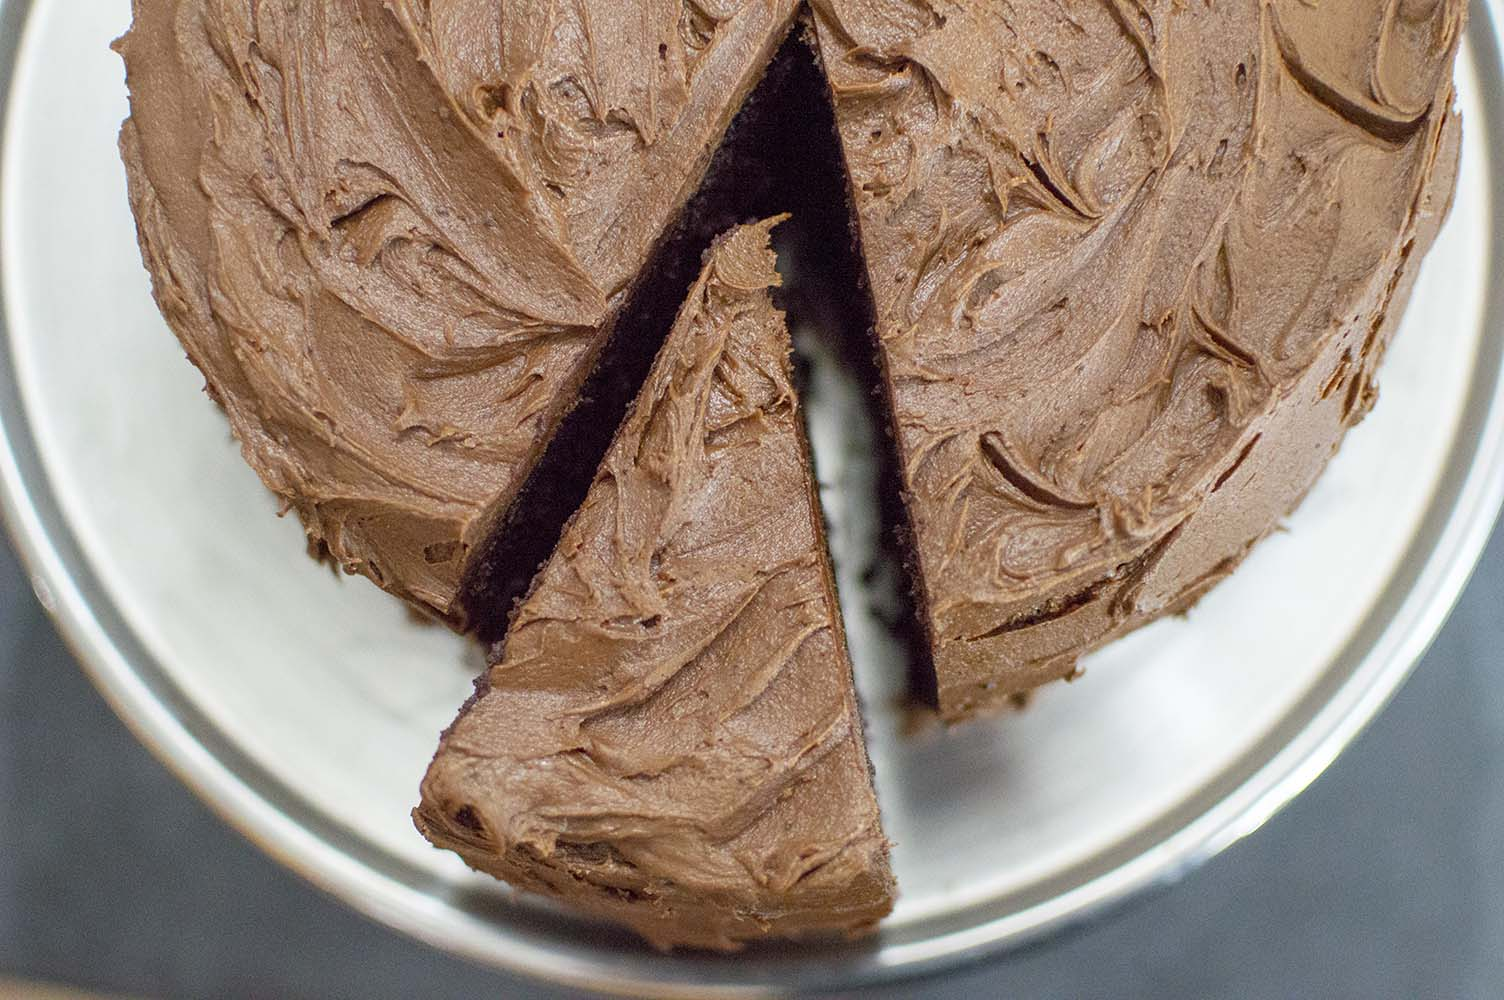 Three Layer Chocolate Cake sliced and ready to serve